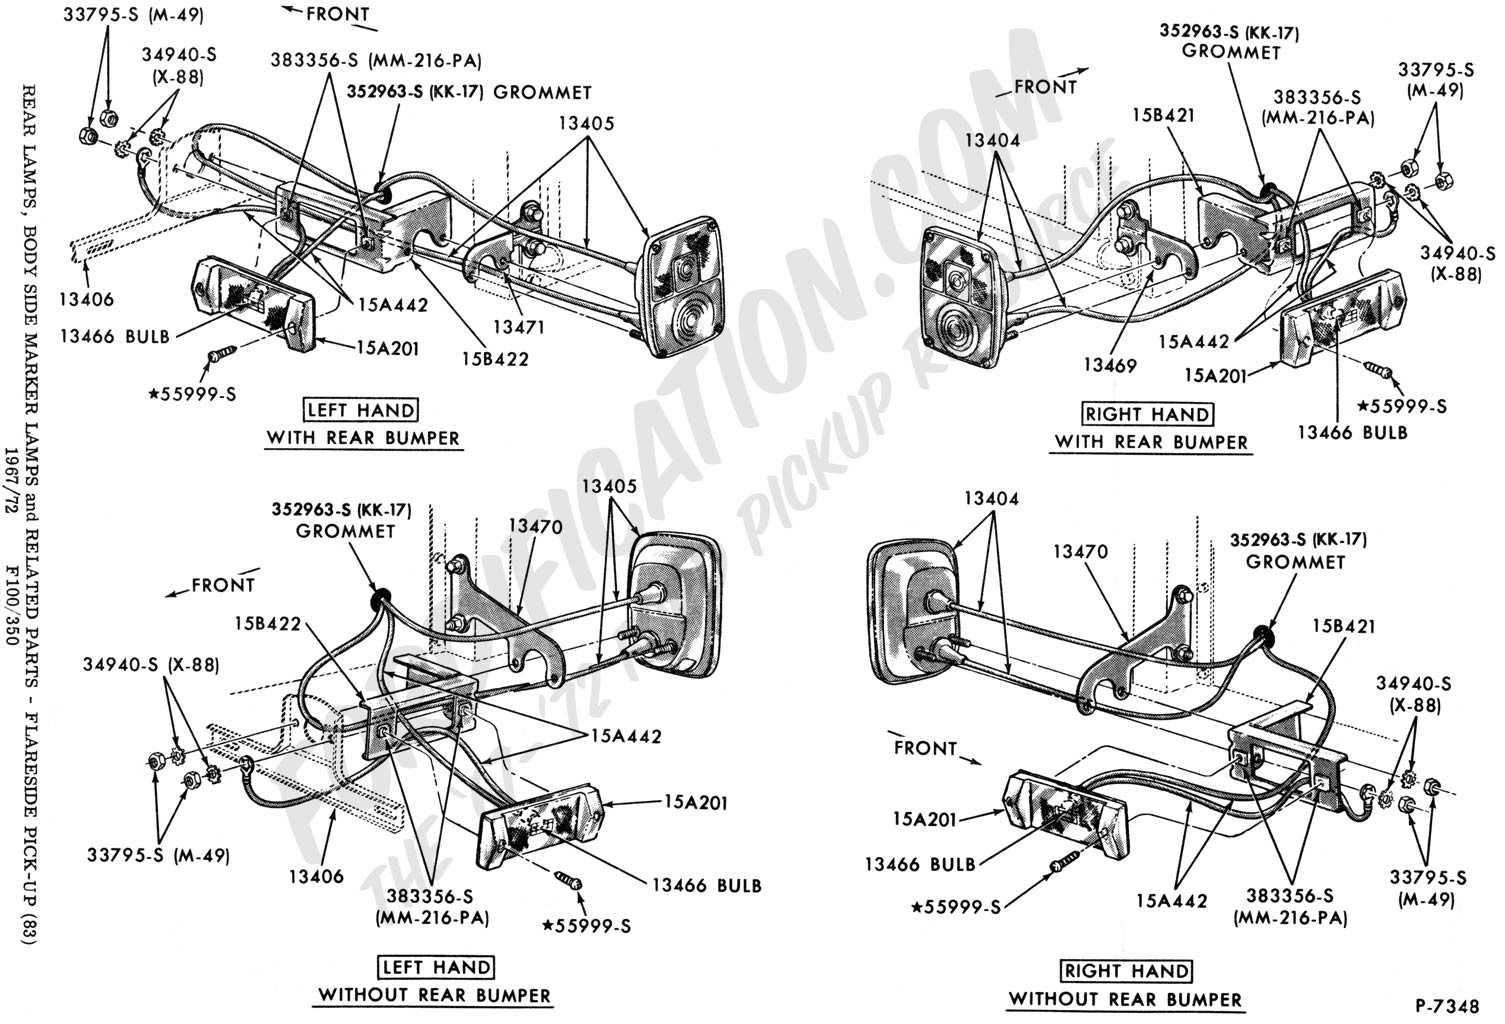 72 ford f100 wiring diagram chrysler radio truck technical drawings and schematics section i